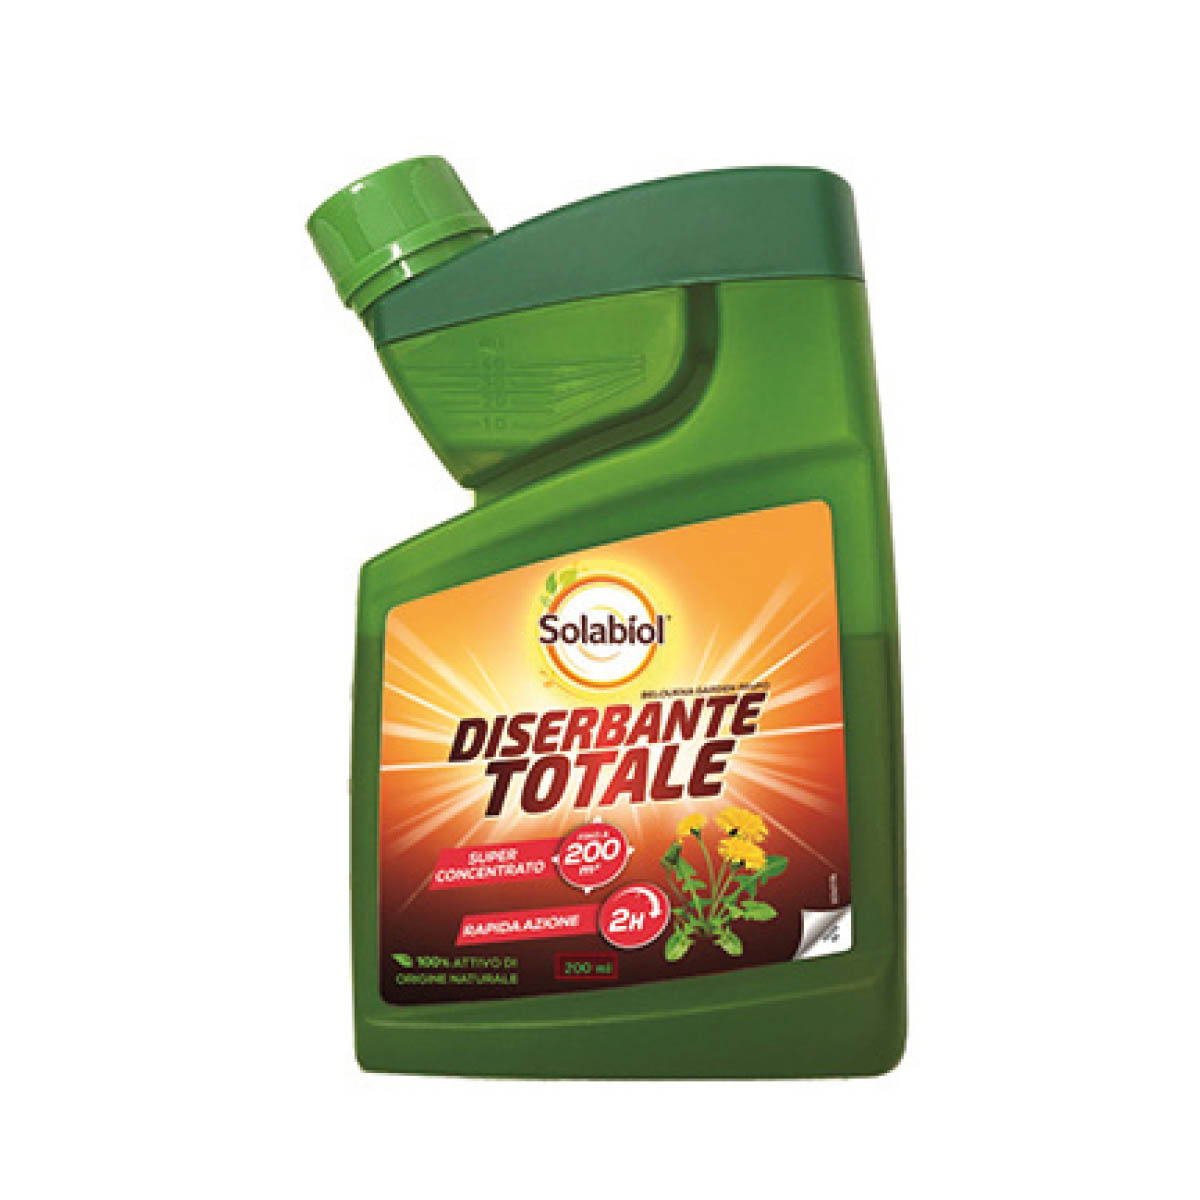 Solabiol Diserbante Beloukha Garden 200 ml